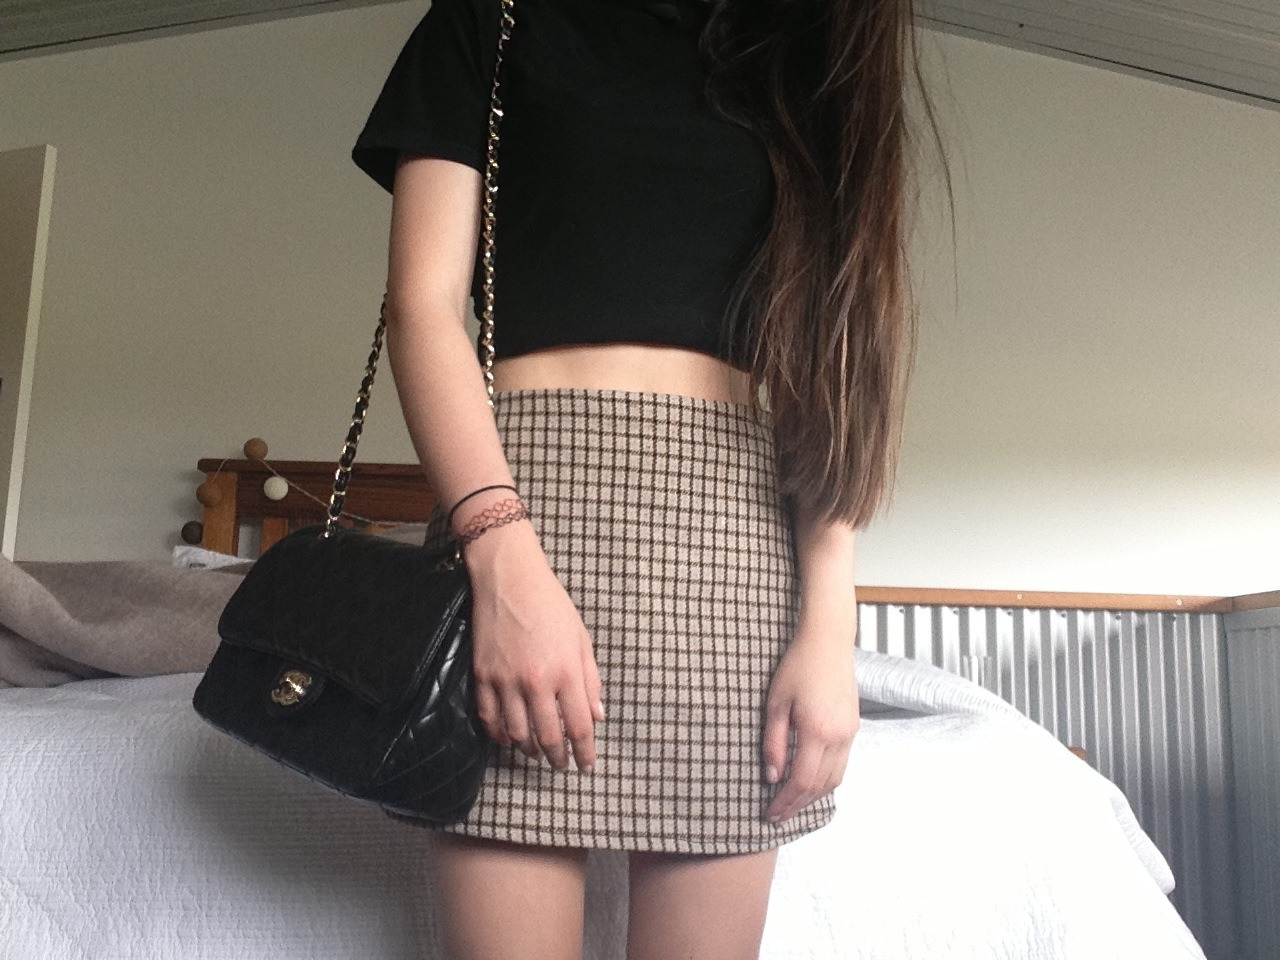 Long Black Skirt Outfits Tumblr 2014-2015 | Fashion Trends 2016-2017